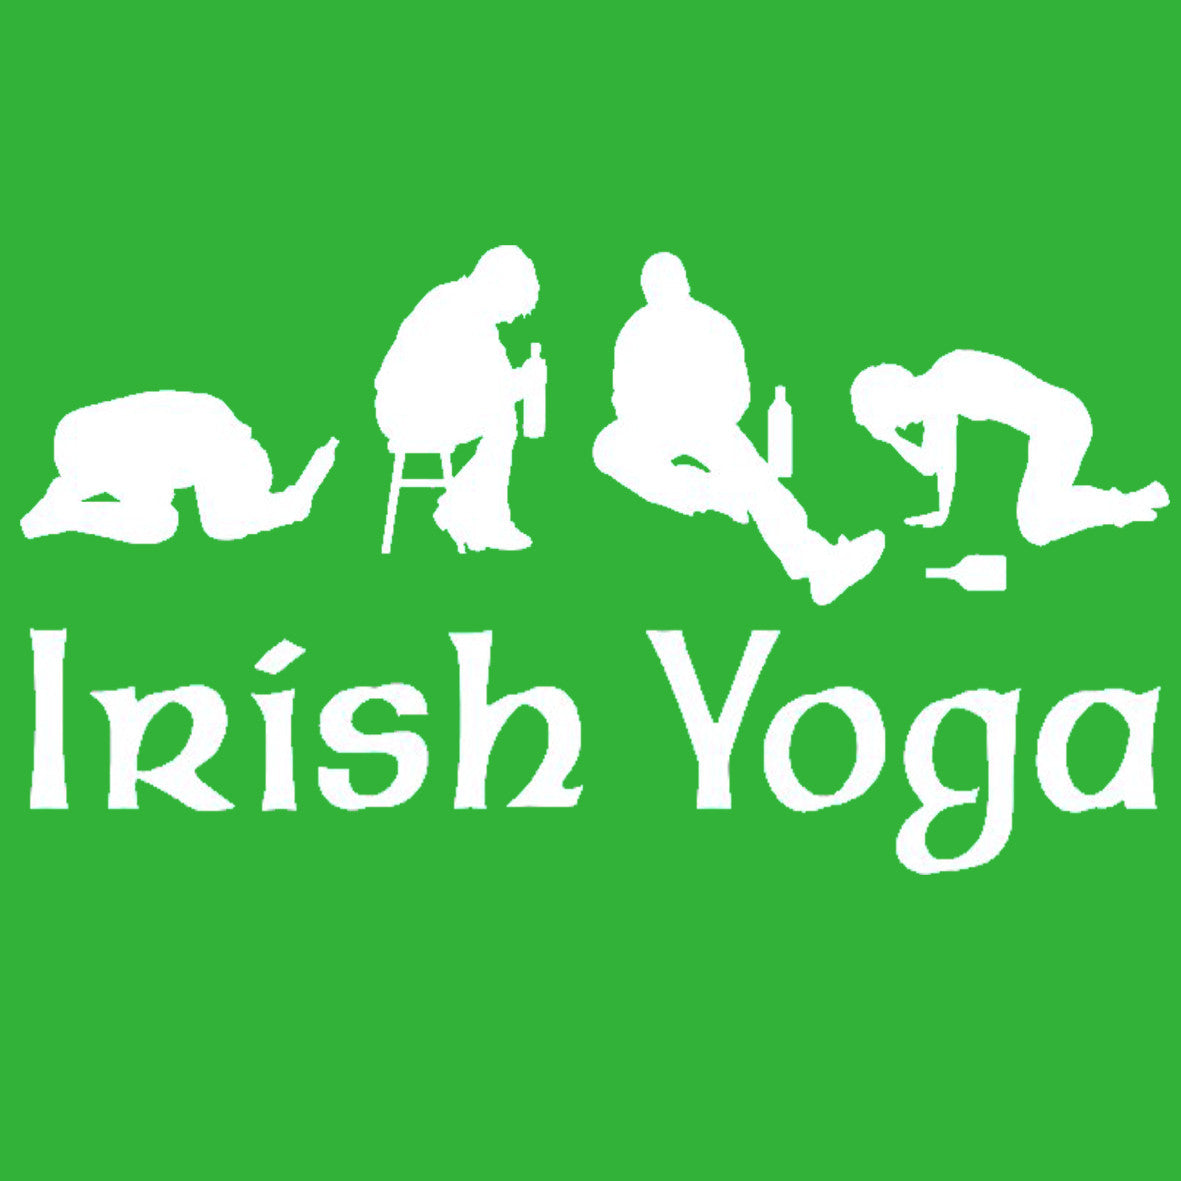 Irish_Yoga_2048x2048?v=1489074100 irish yoga central t shirts